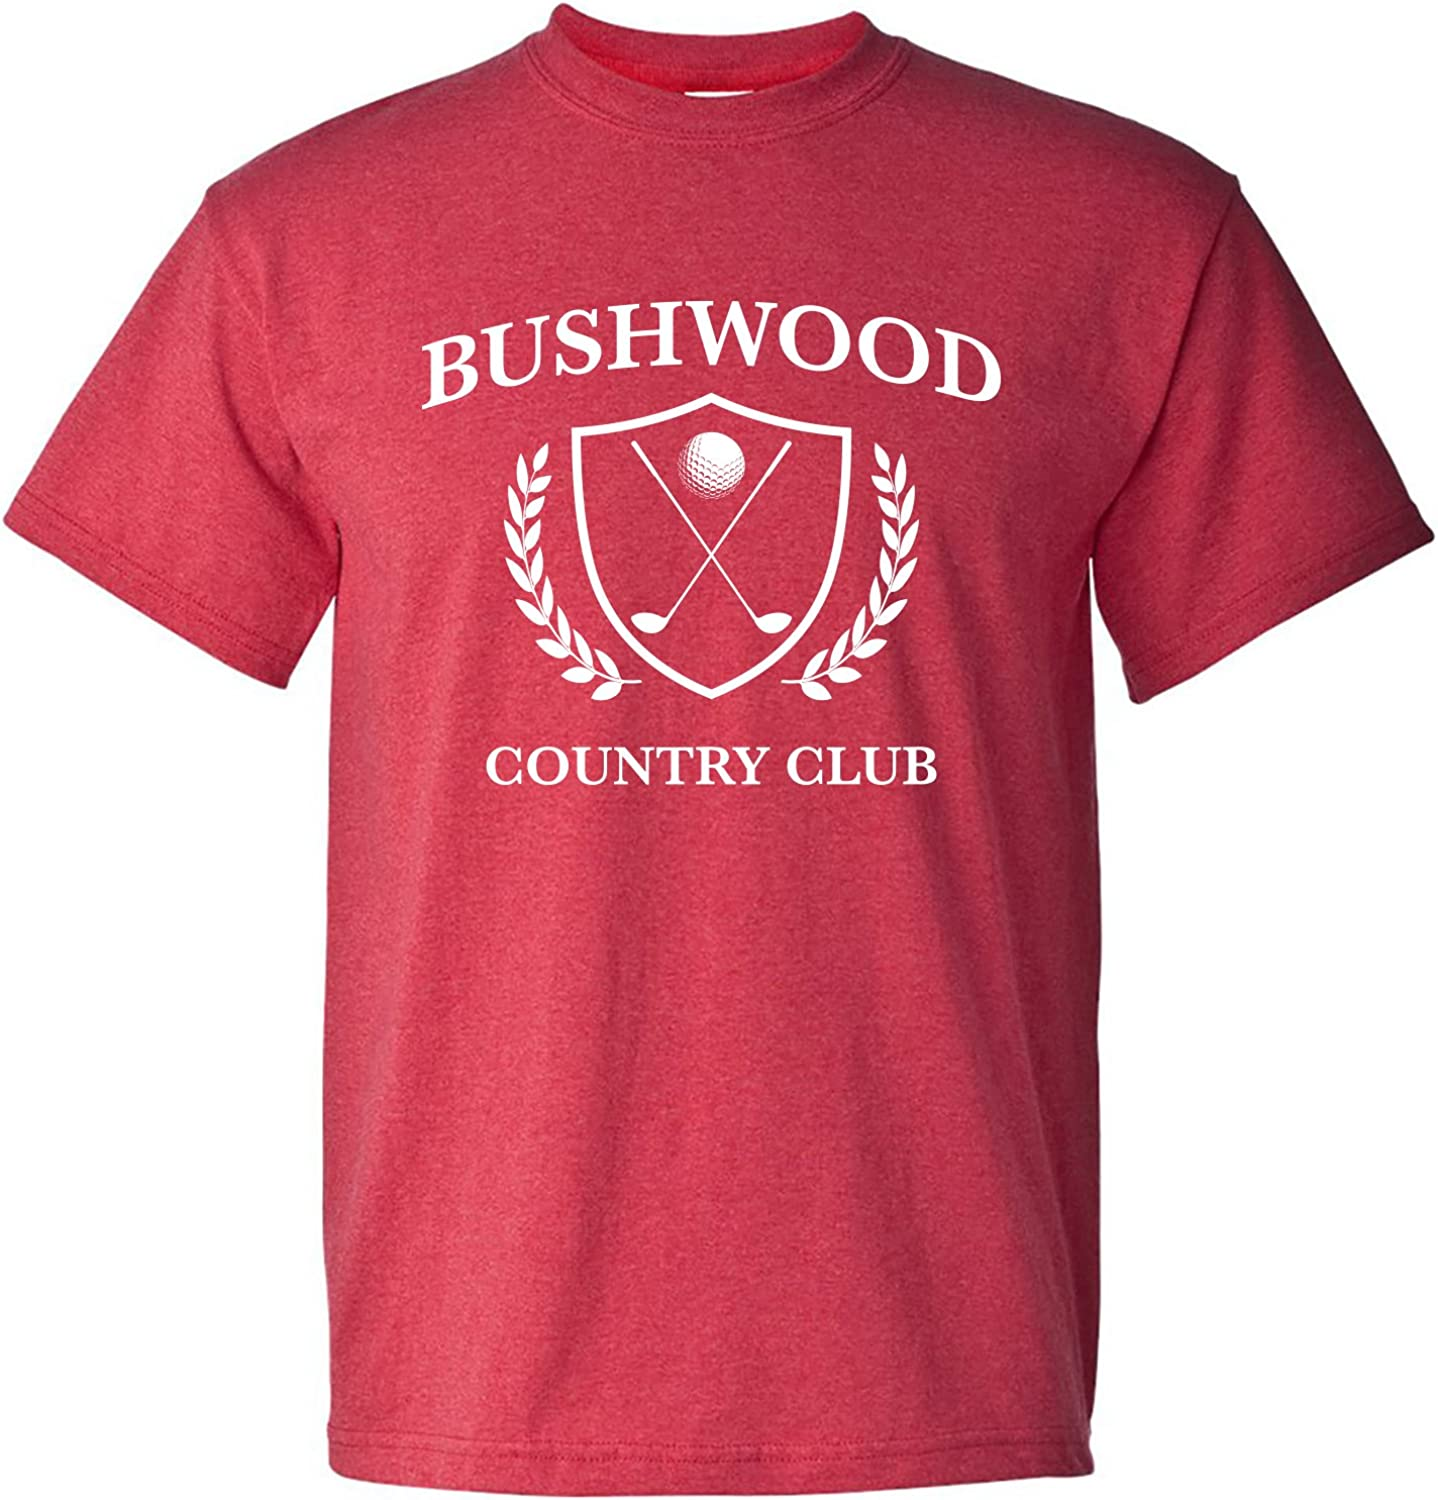 UGP Campus Apparel Bushwood Country Club - Funny Golf Golfing T Shirt